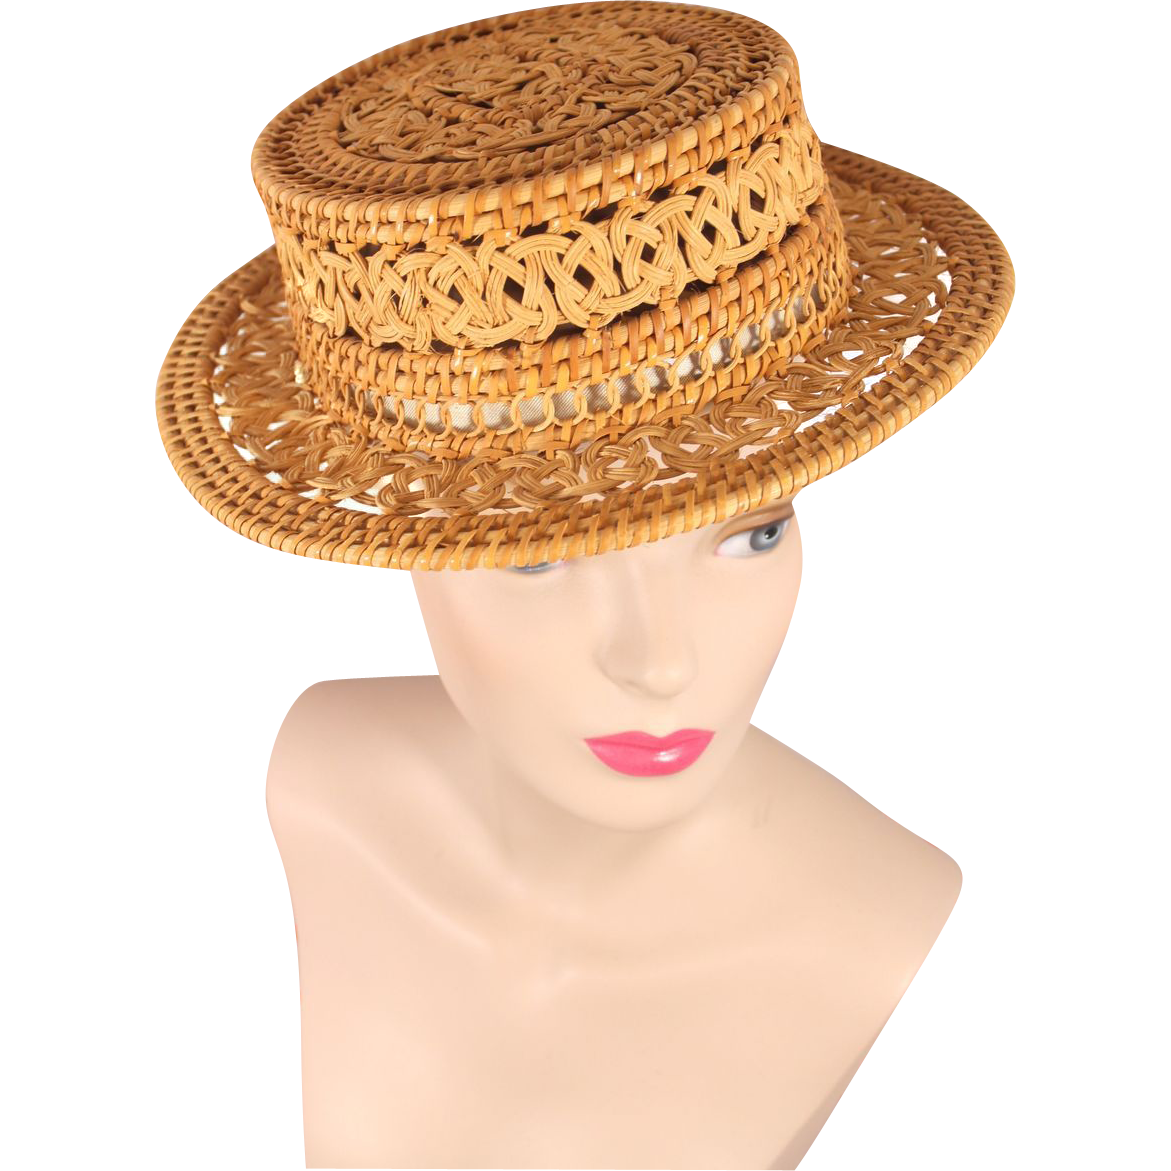 Vintage 1950s Woven Wicker or Rattan Boater Hat